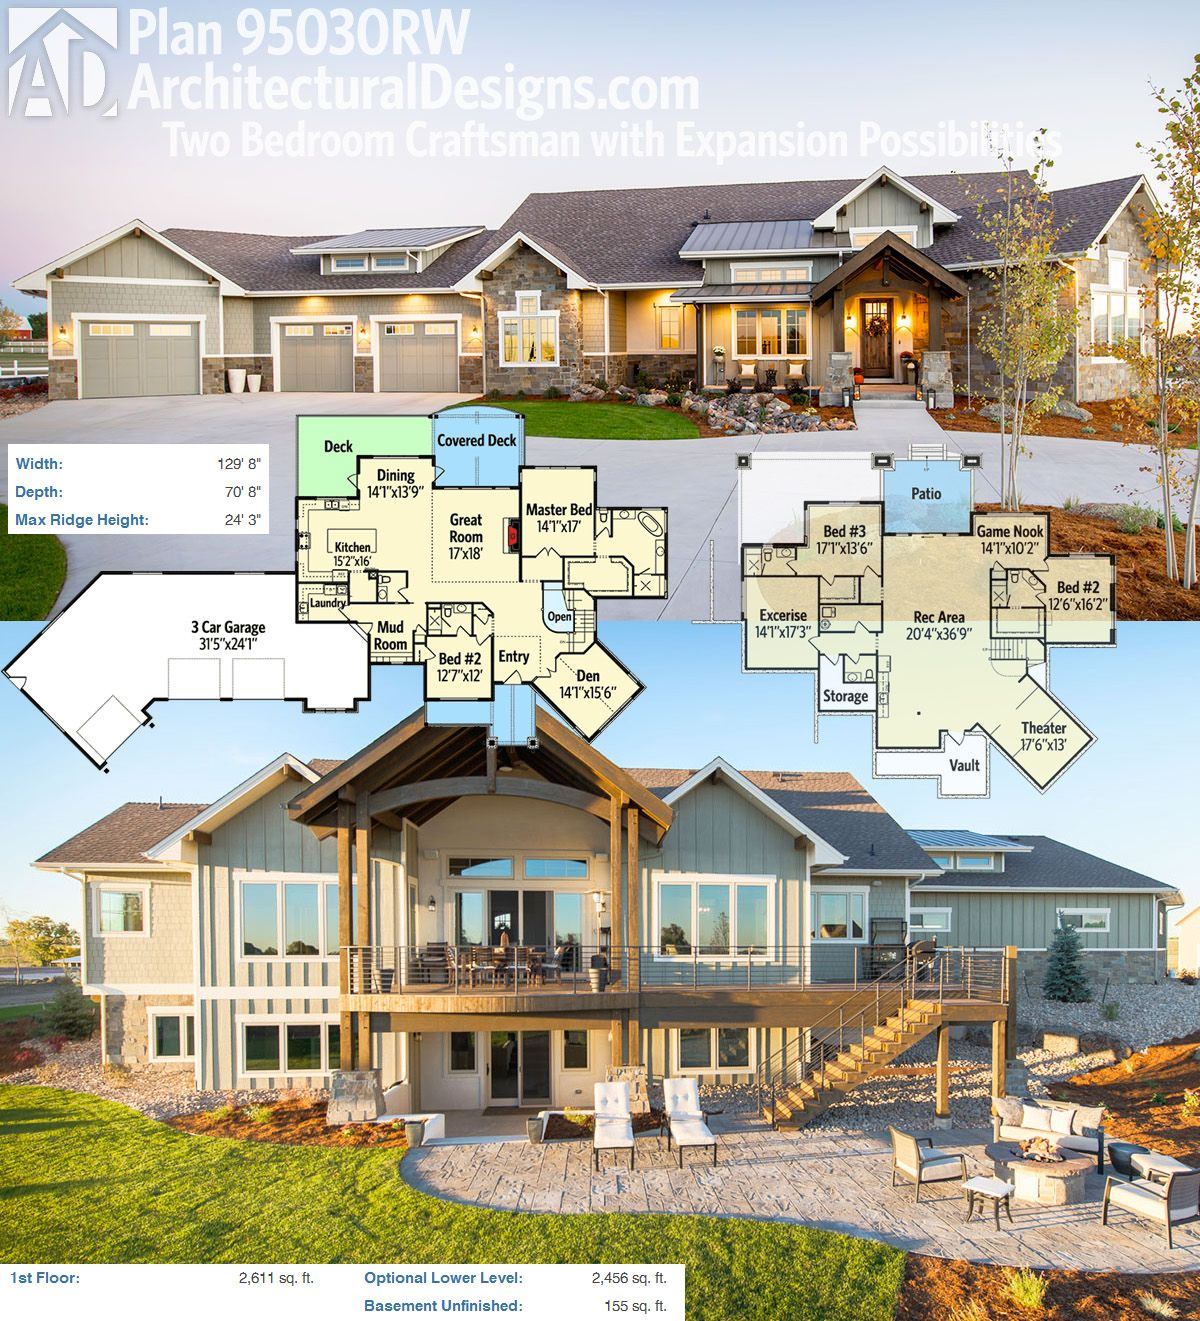 Plan 95030RW: Two Bedroom Craftsman House Plan With Expansion Possibilities